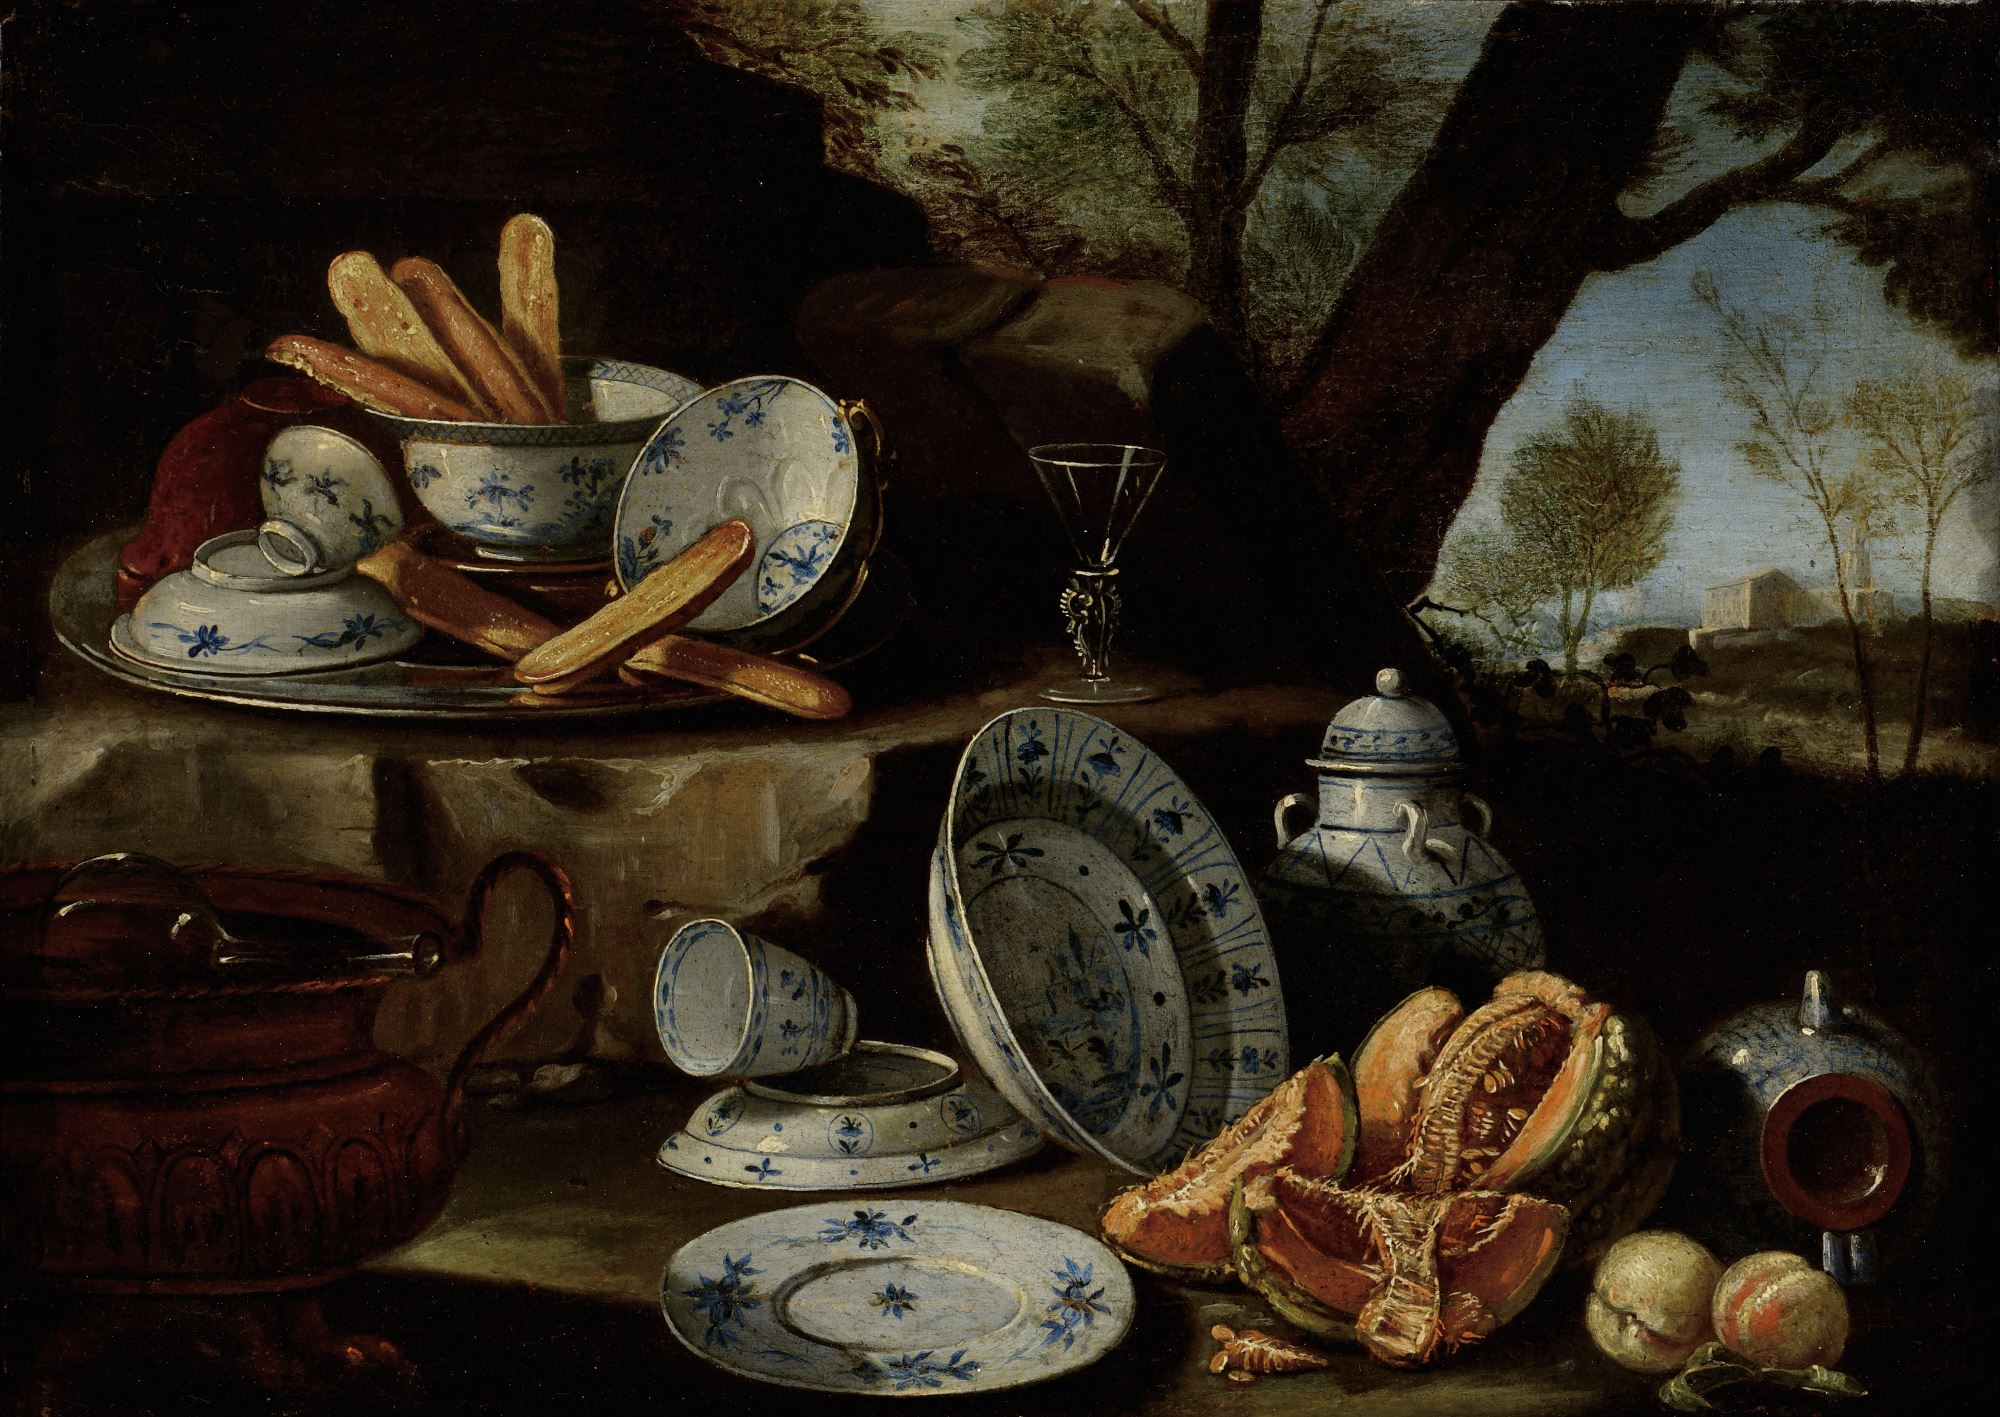 Still Life with Blue and White Porcelain